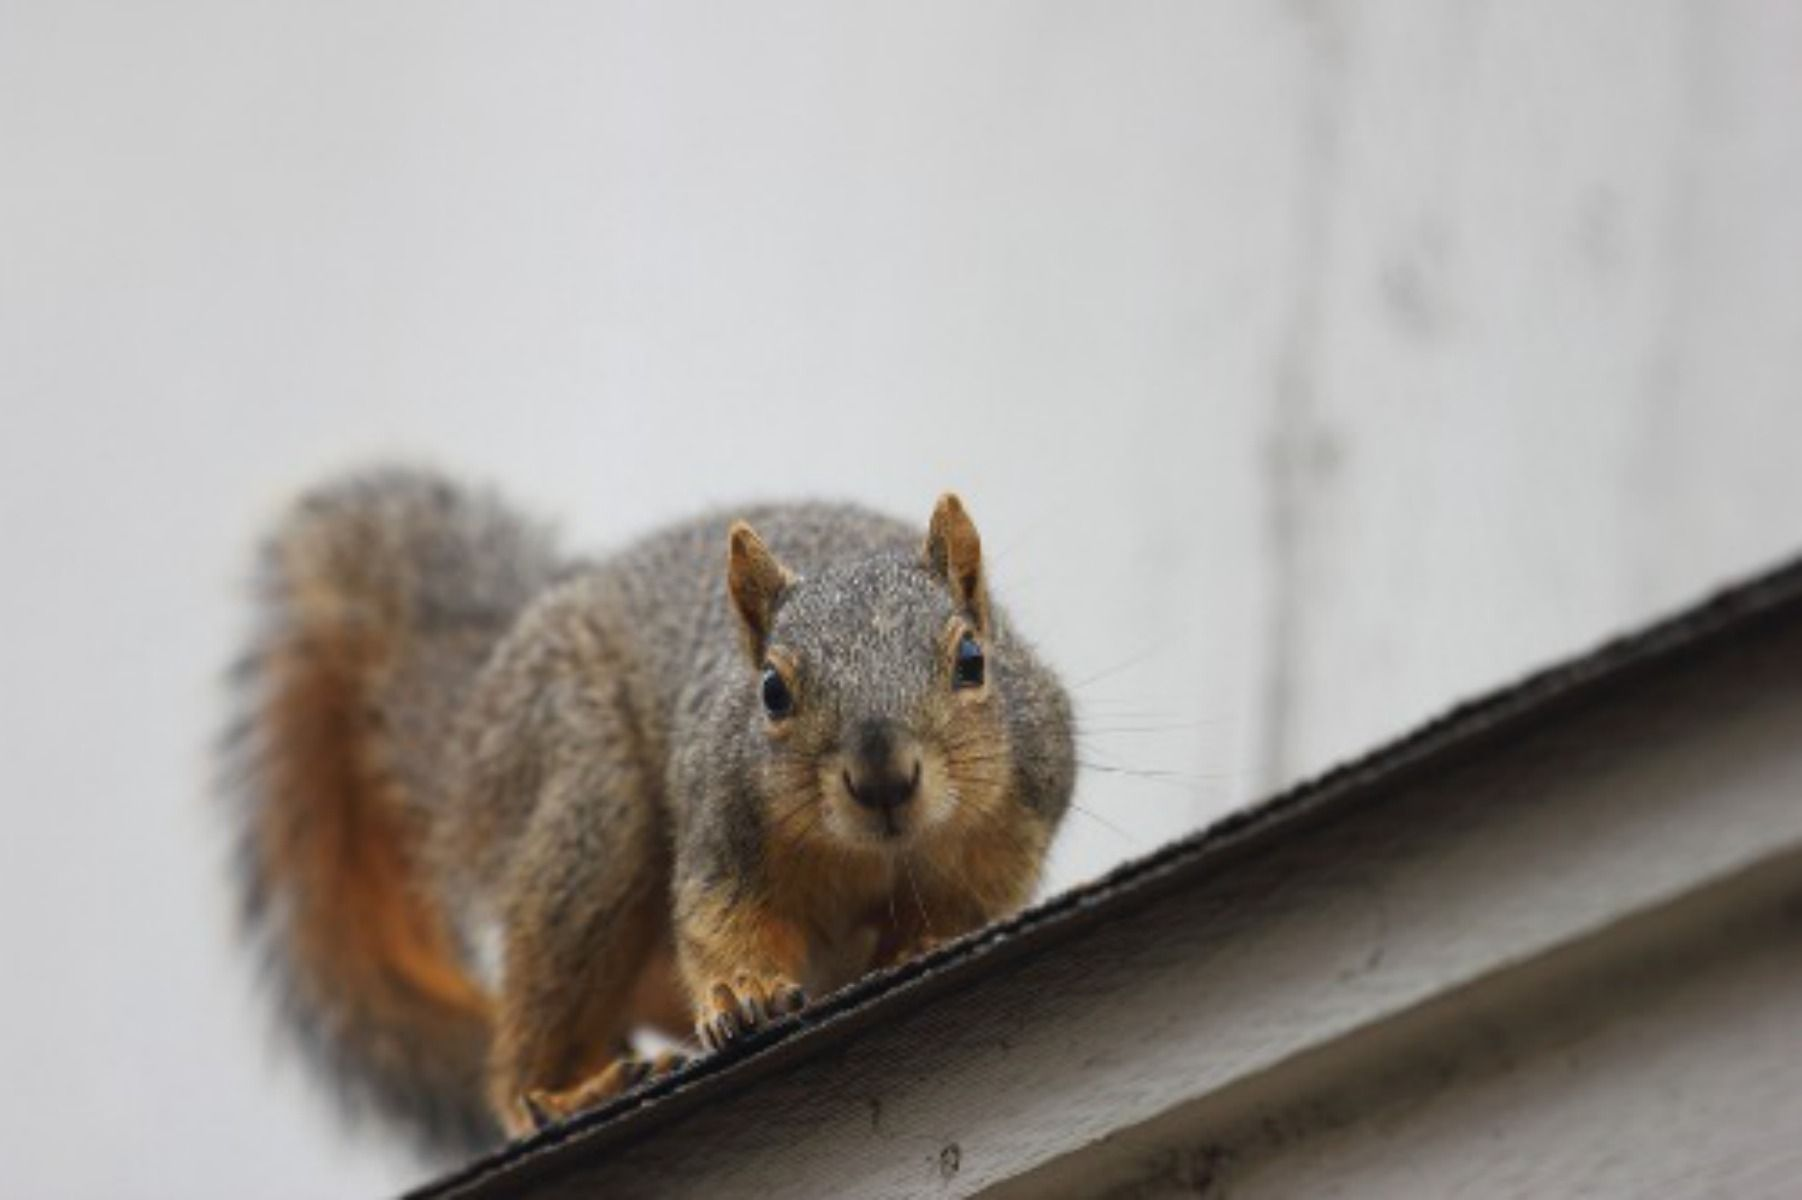 Fall is the time of year when squirrels aggressively start